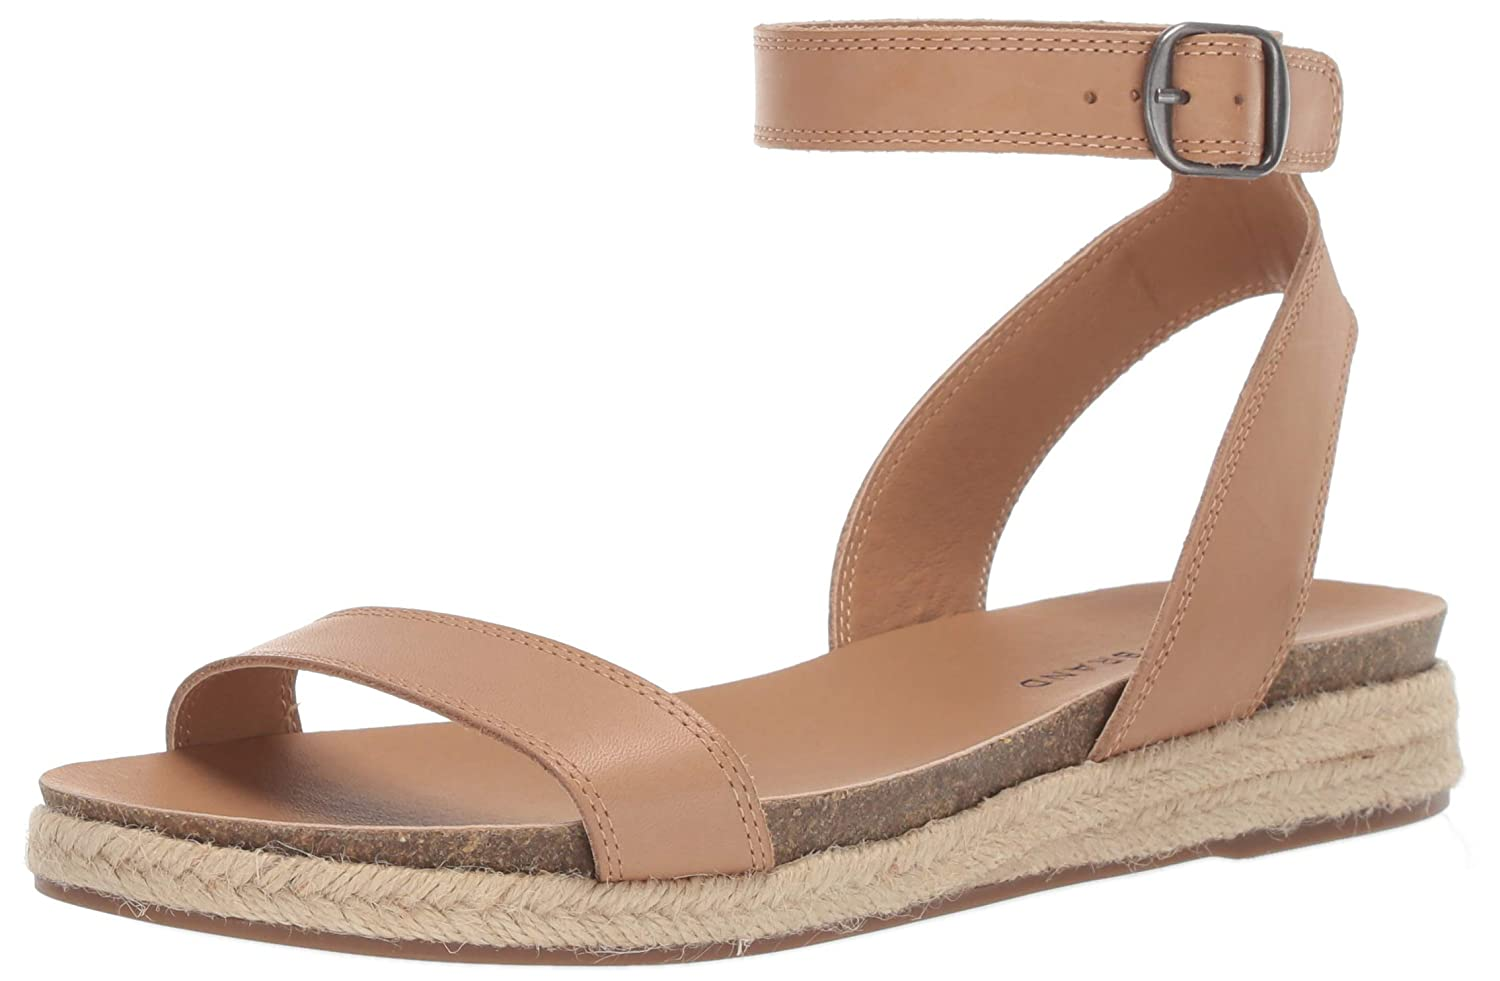 [Lucky Garston Brand] Ankle-High Women's Garston Ankle-High Suede Sandal US|ストーン B07GSM8JND 11 M US|ストーン ストーン 11 M US, ササクラスポーツ:5b867349 --- itxassou.fr